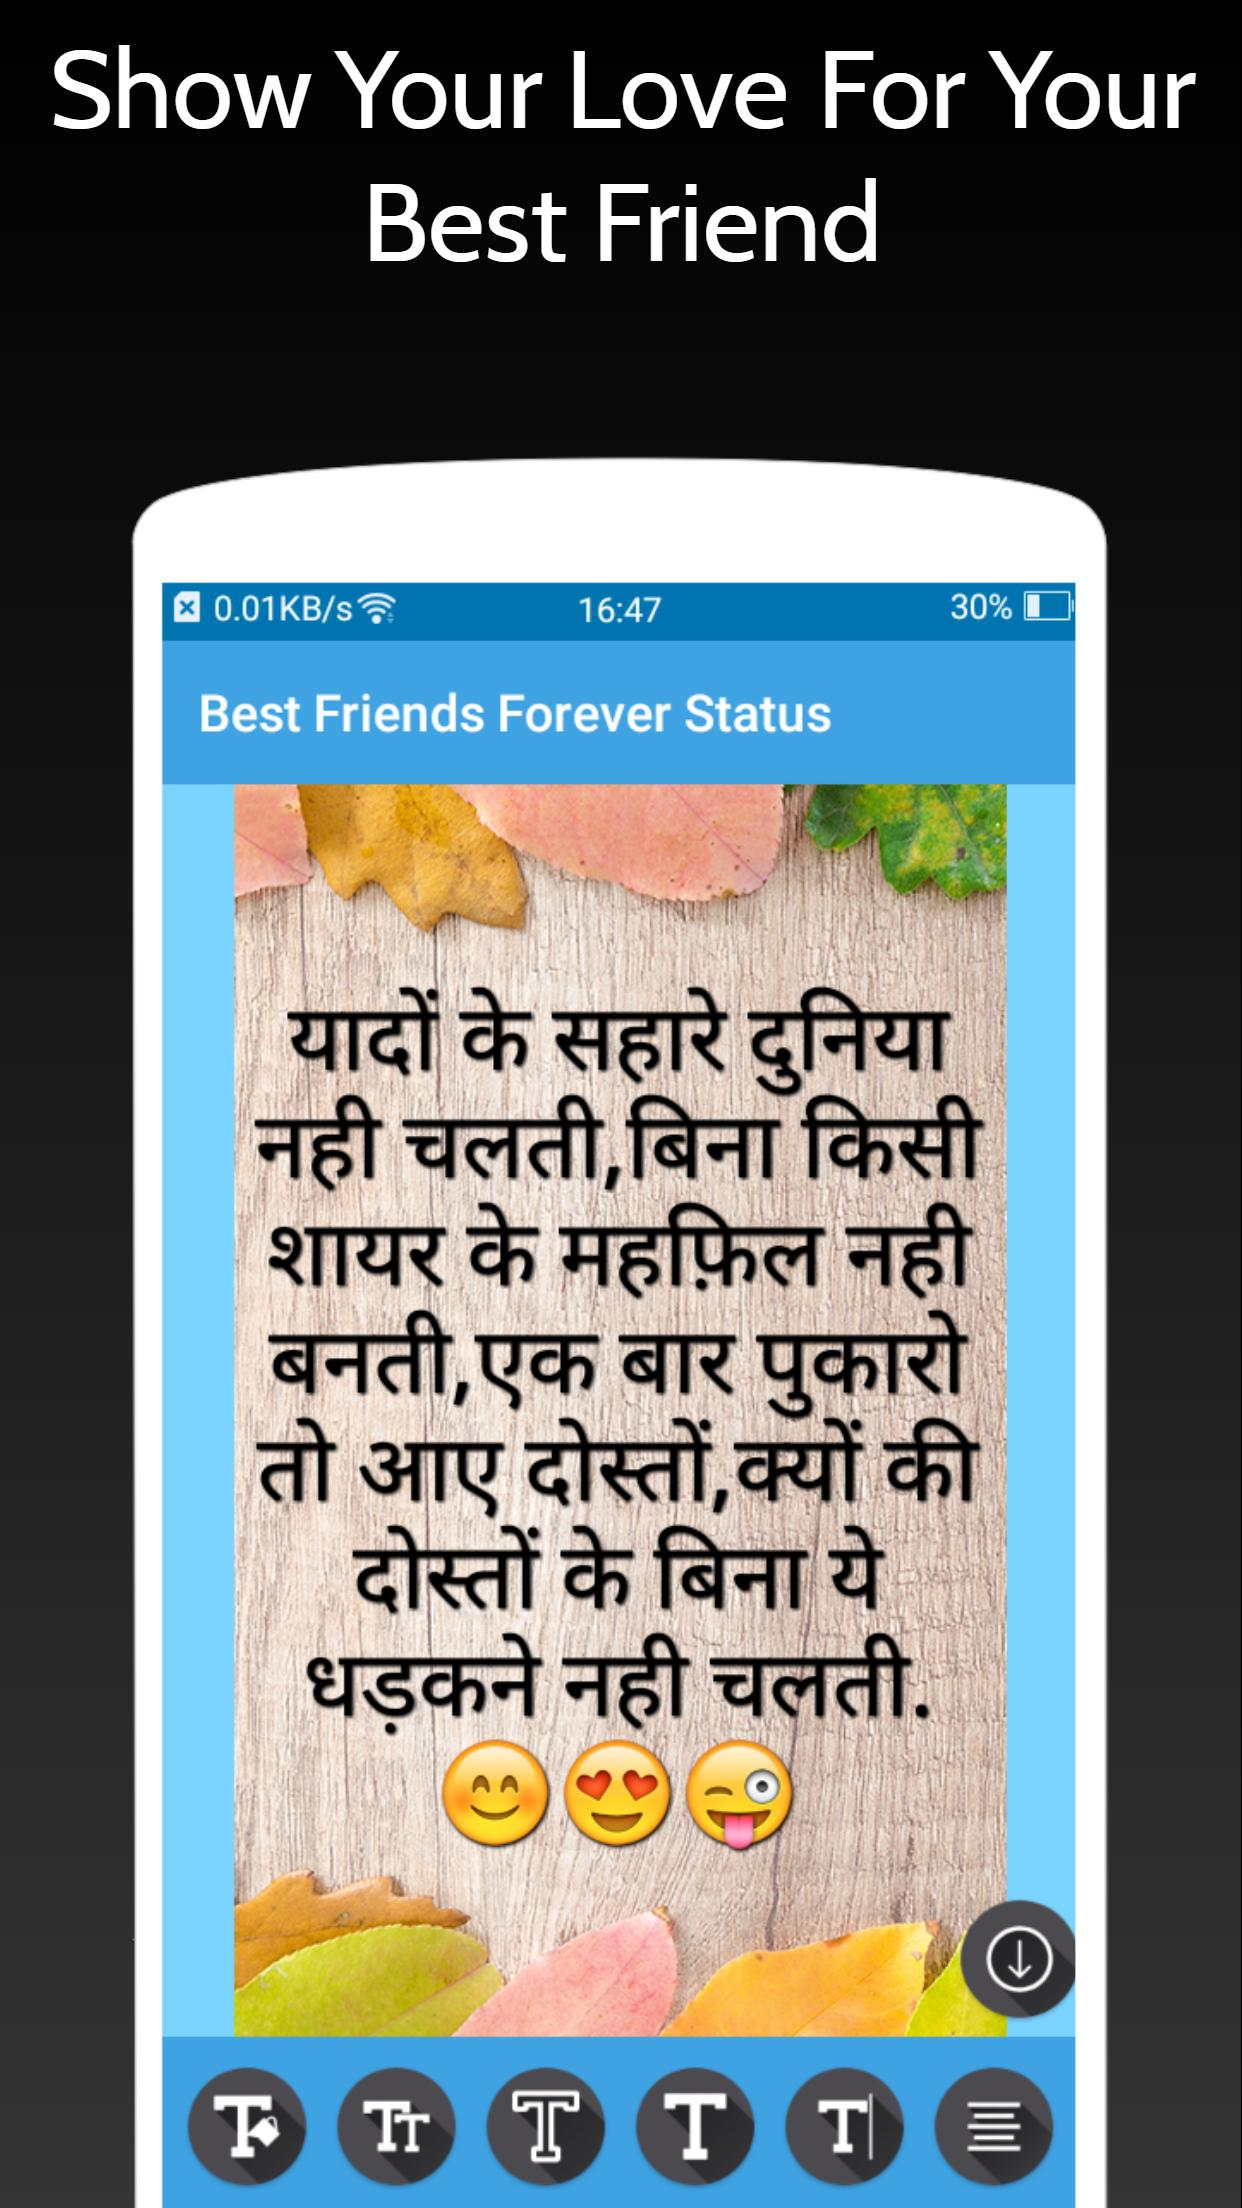 Best Friends Forever Status For Android Apk Download It's hard to meet people in life who are willing to give everything without the hope of any return. best friends forever status for android